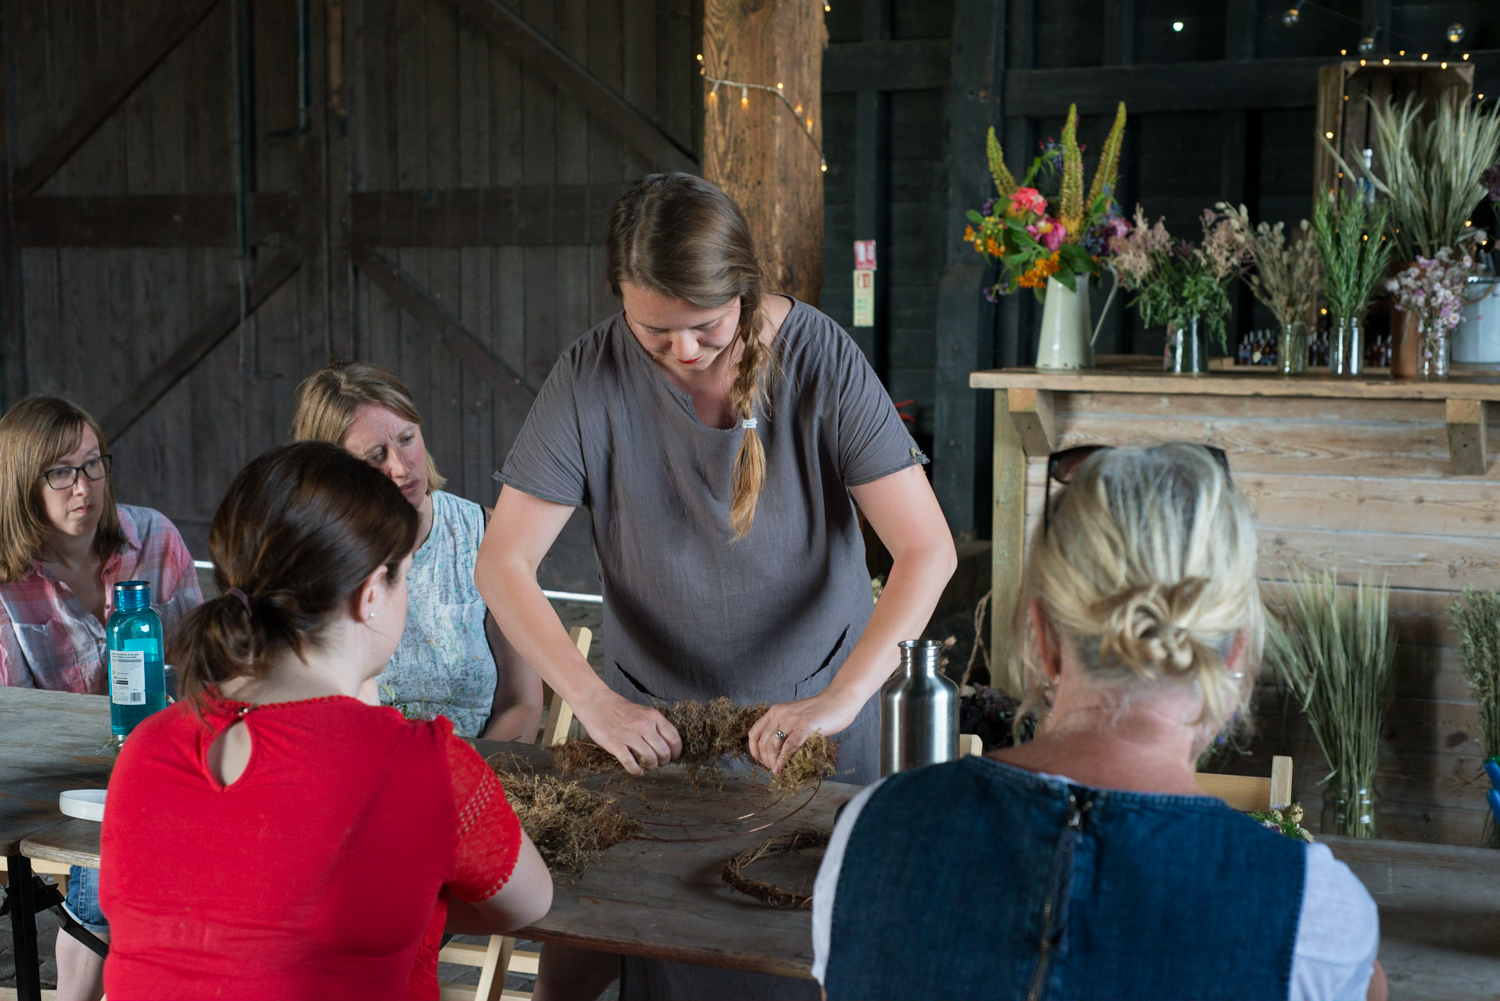 TNS day two floral wreath session-8.jpg